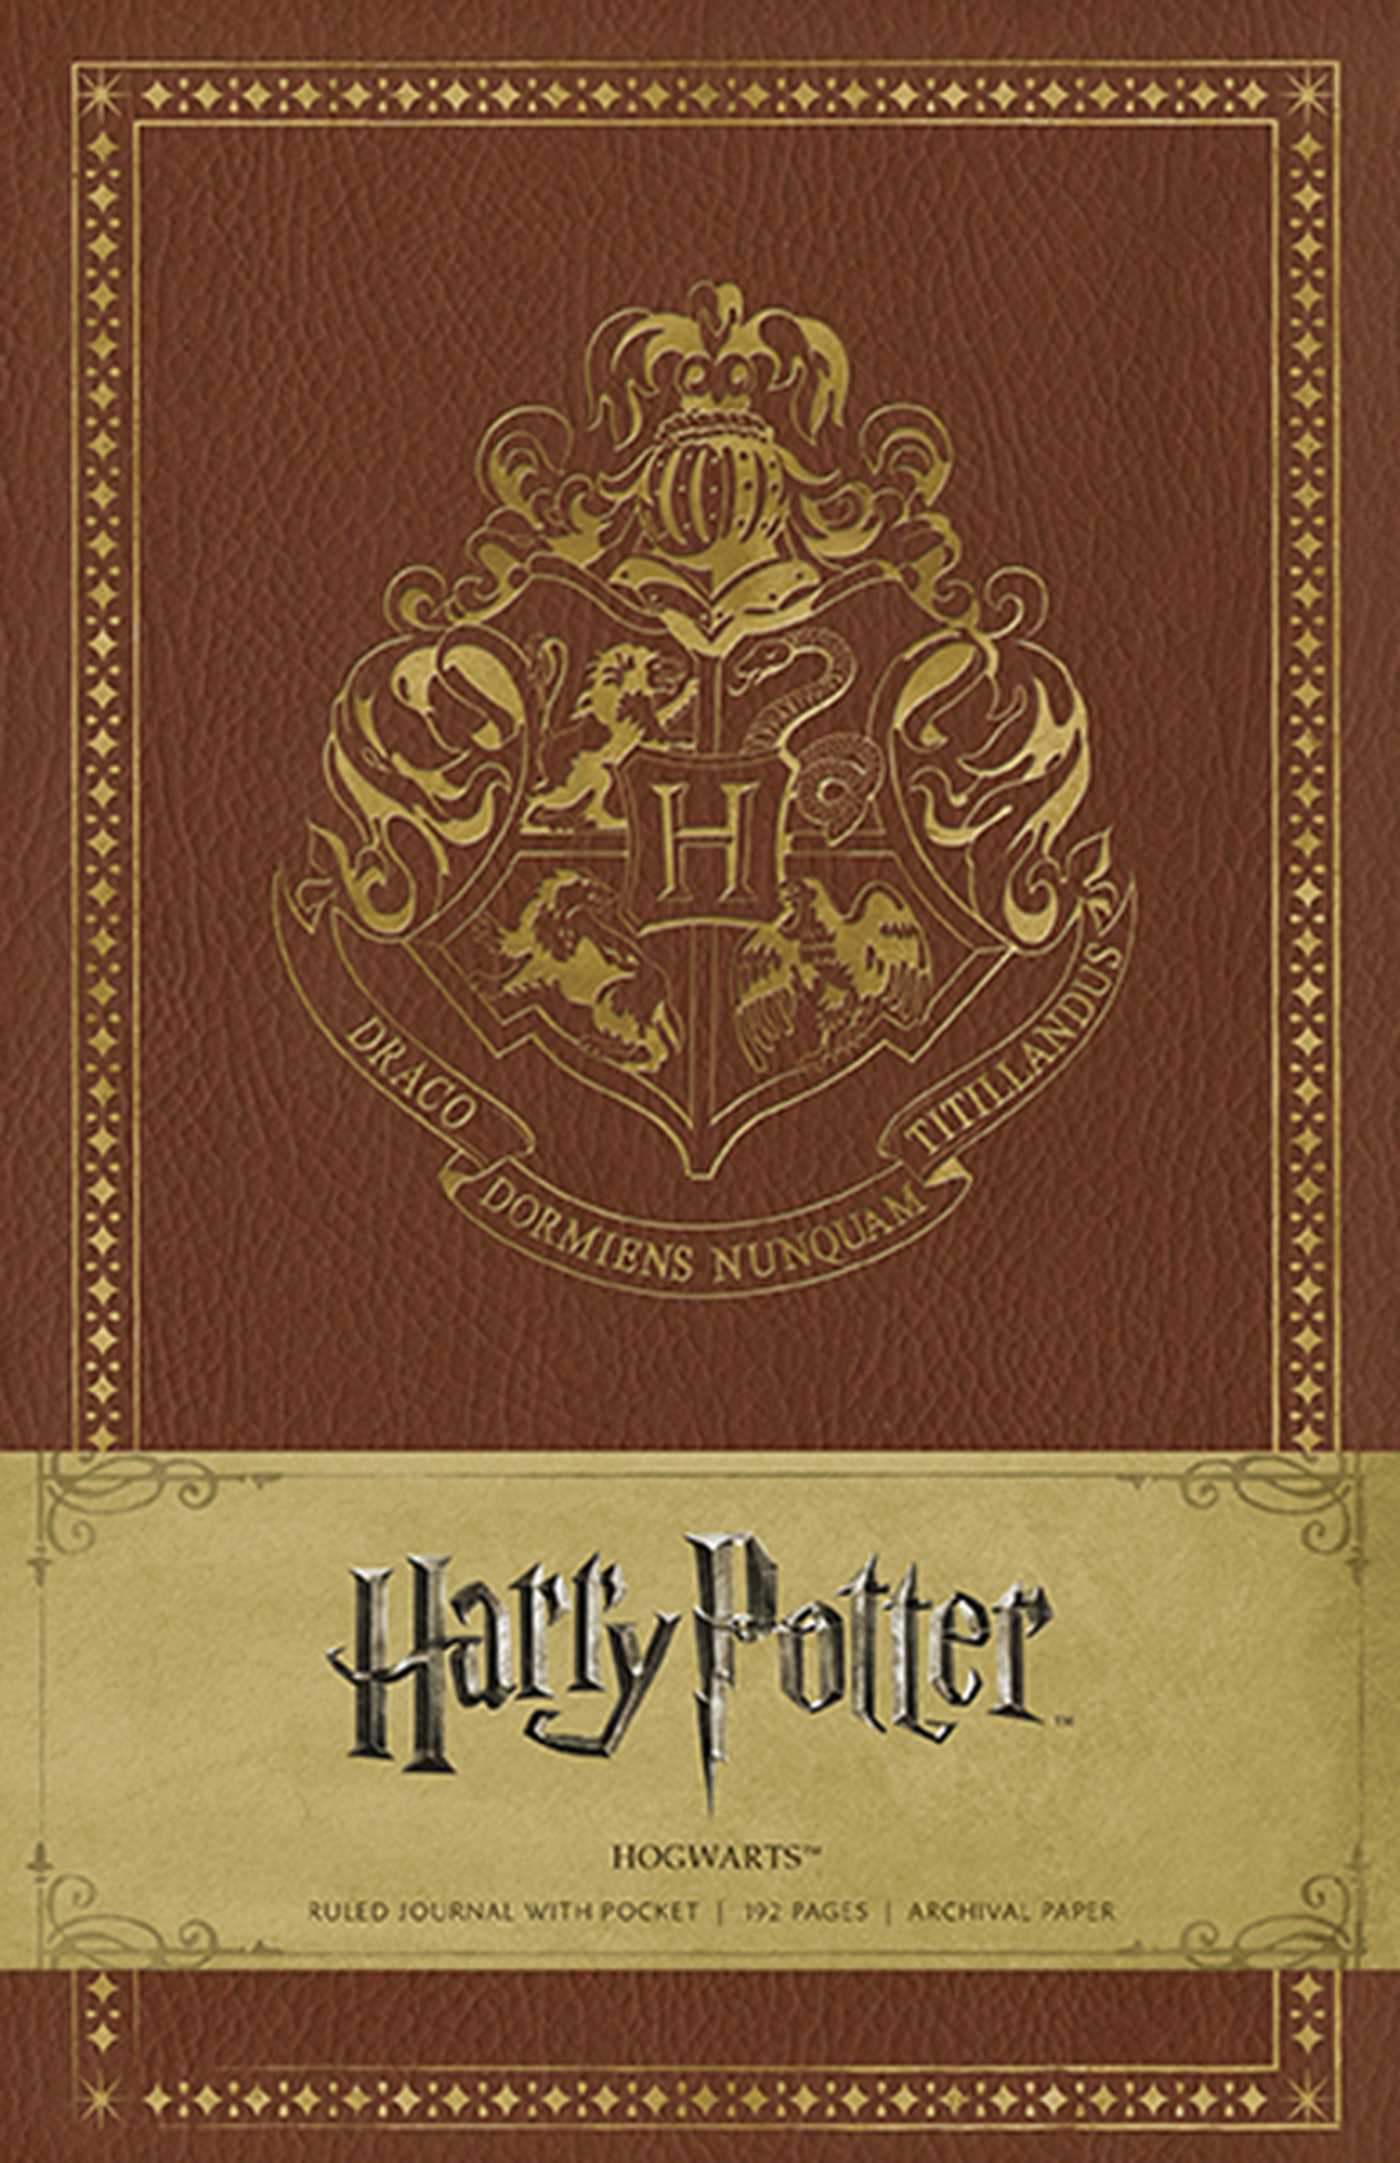 Harry Potter Book Images : Harry potter hogwarts hardcover ruled journal book by